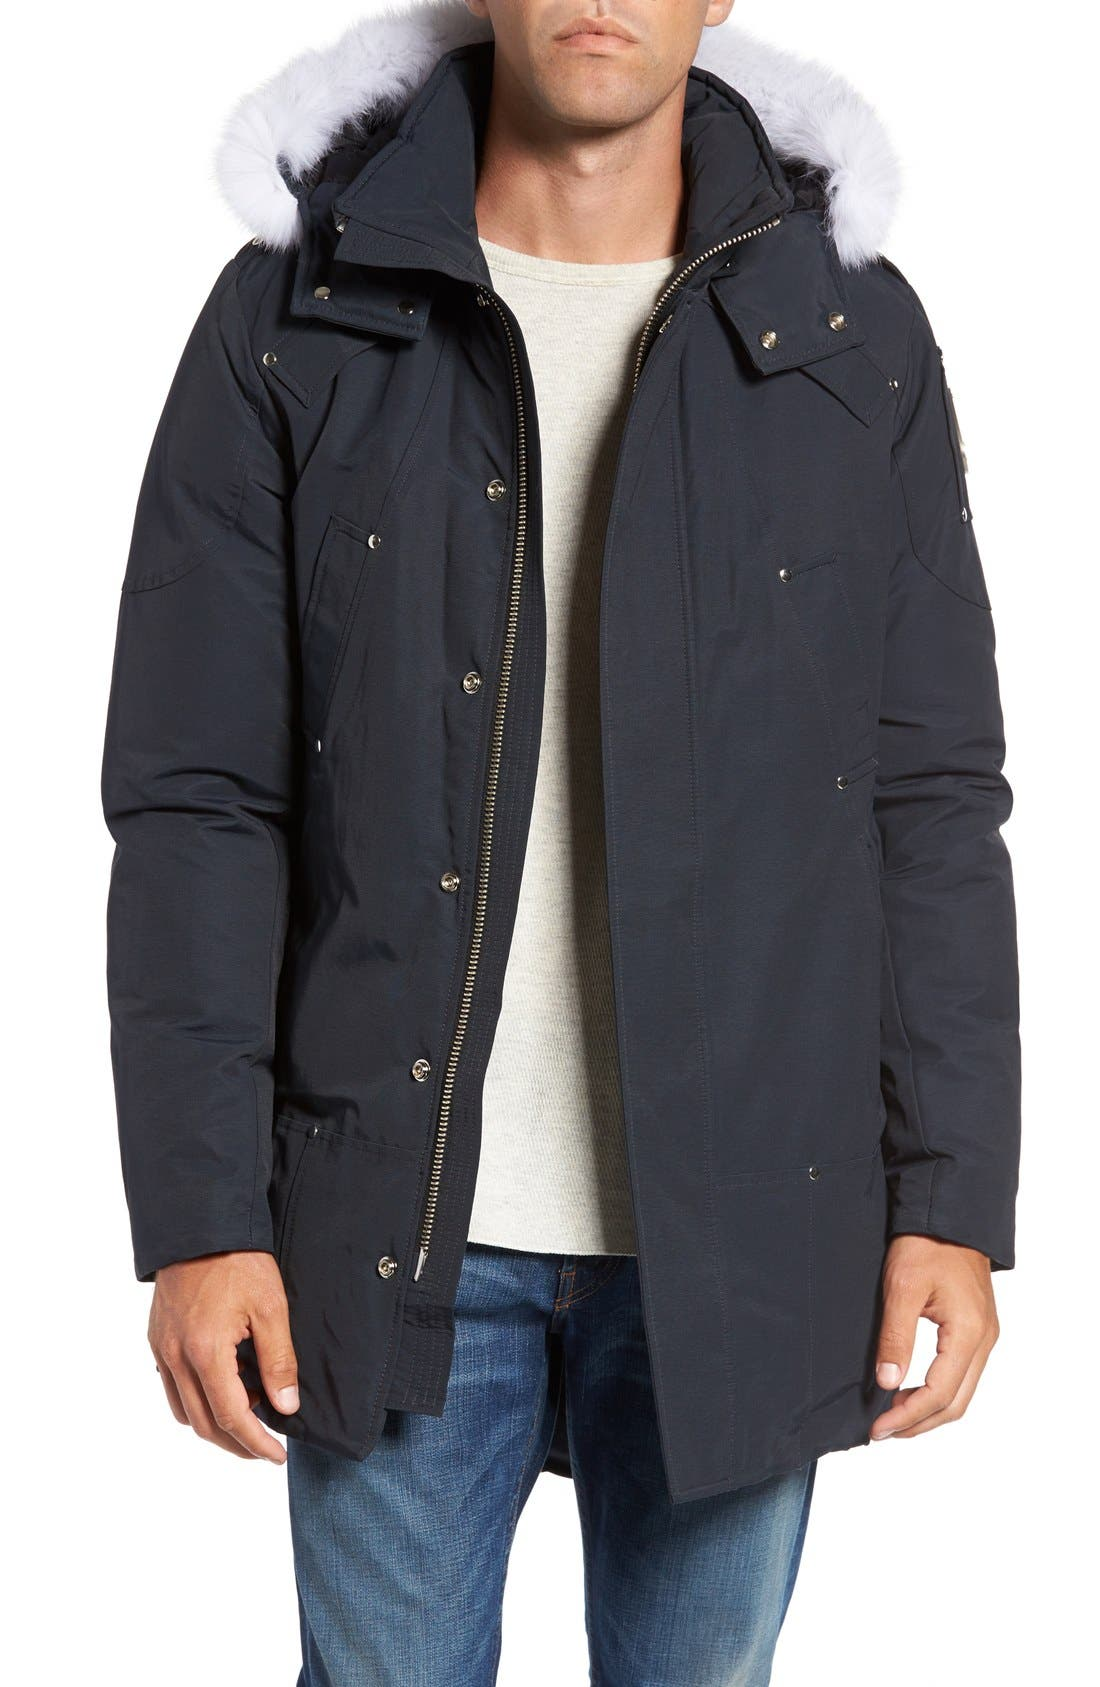 Main Image - Moose Knuckles Stirling Water Repellent Down Parka with Genuine Fox Fur Trim